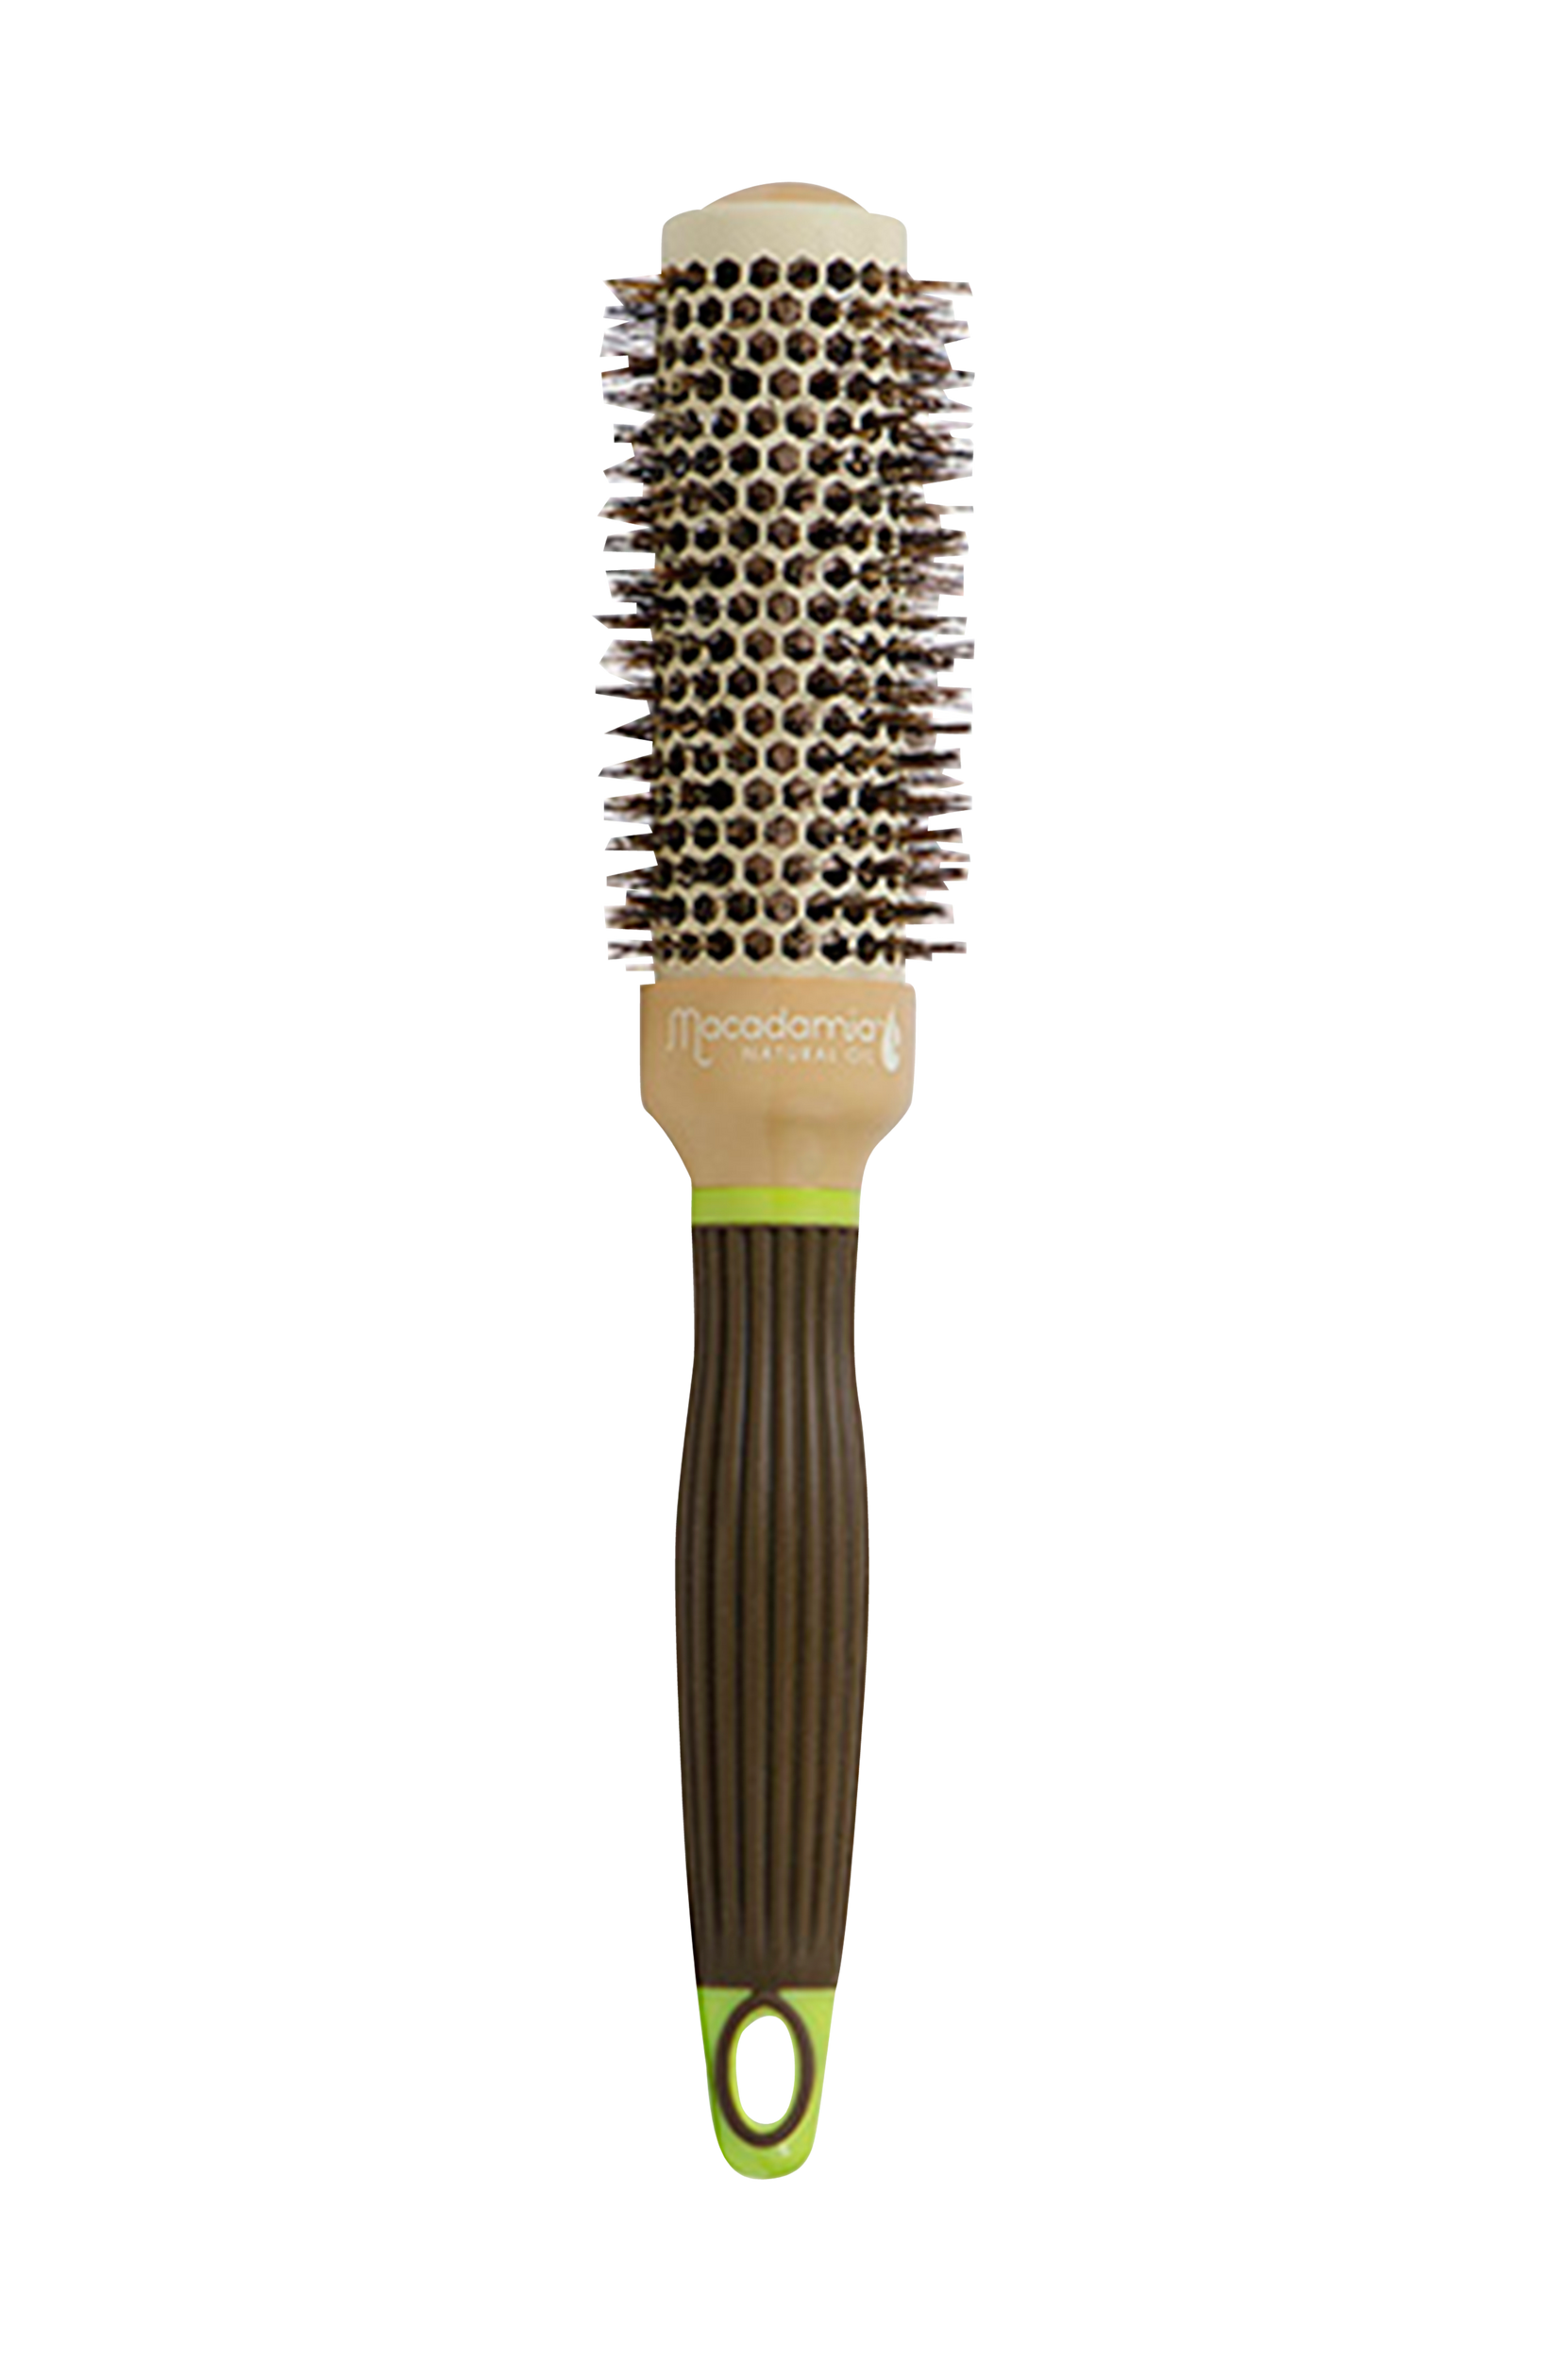 Köpa billiga Boar Hot Curling Brush 33mm online